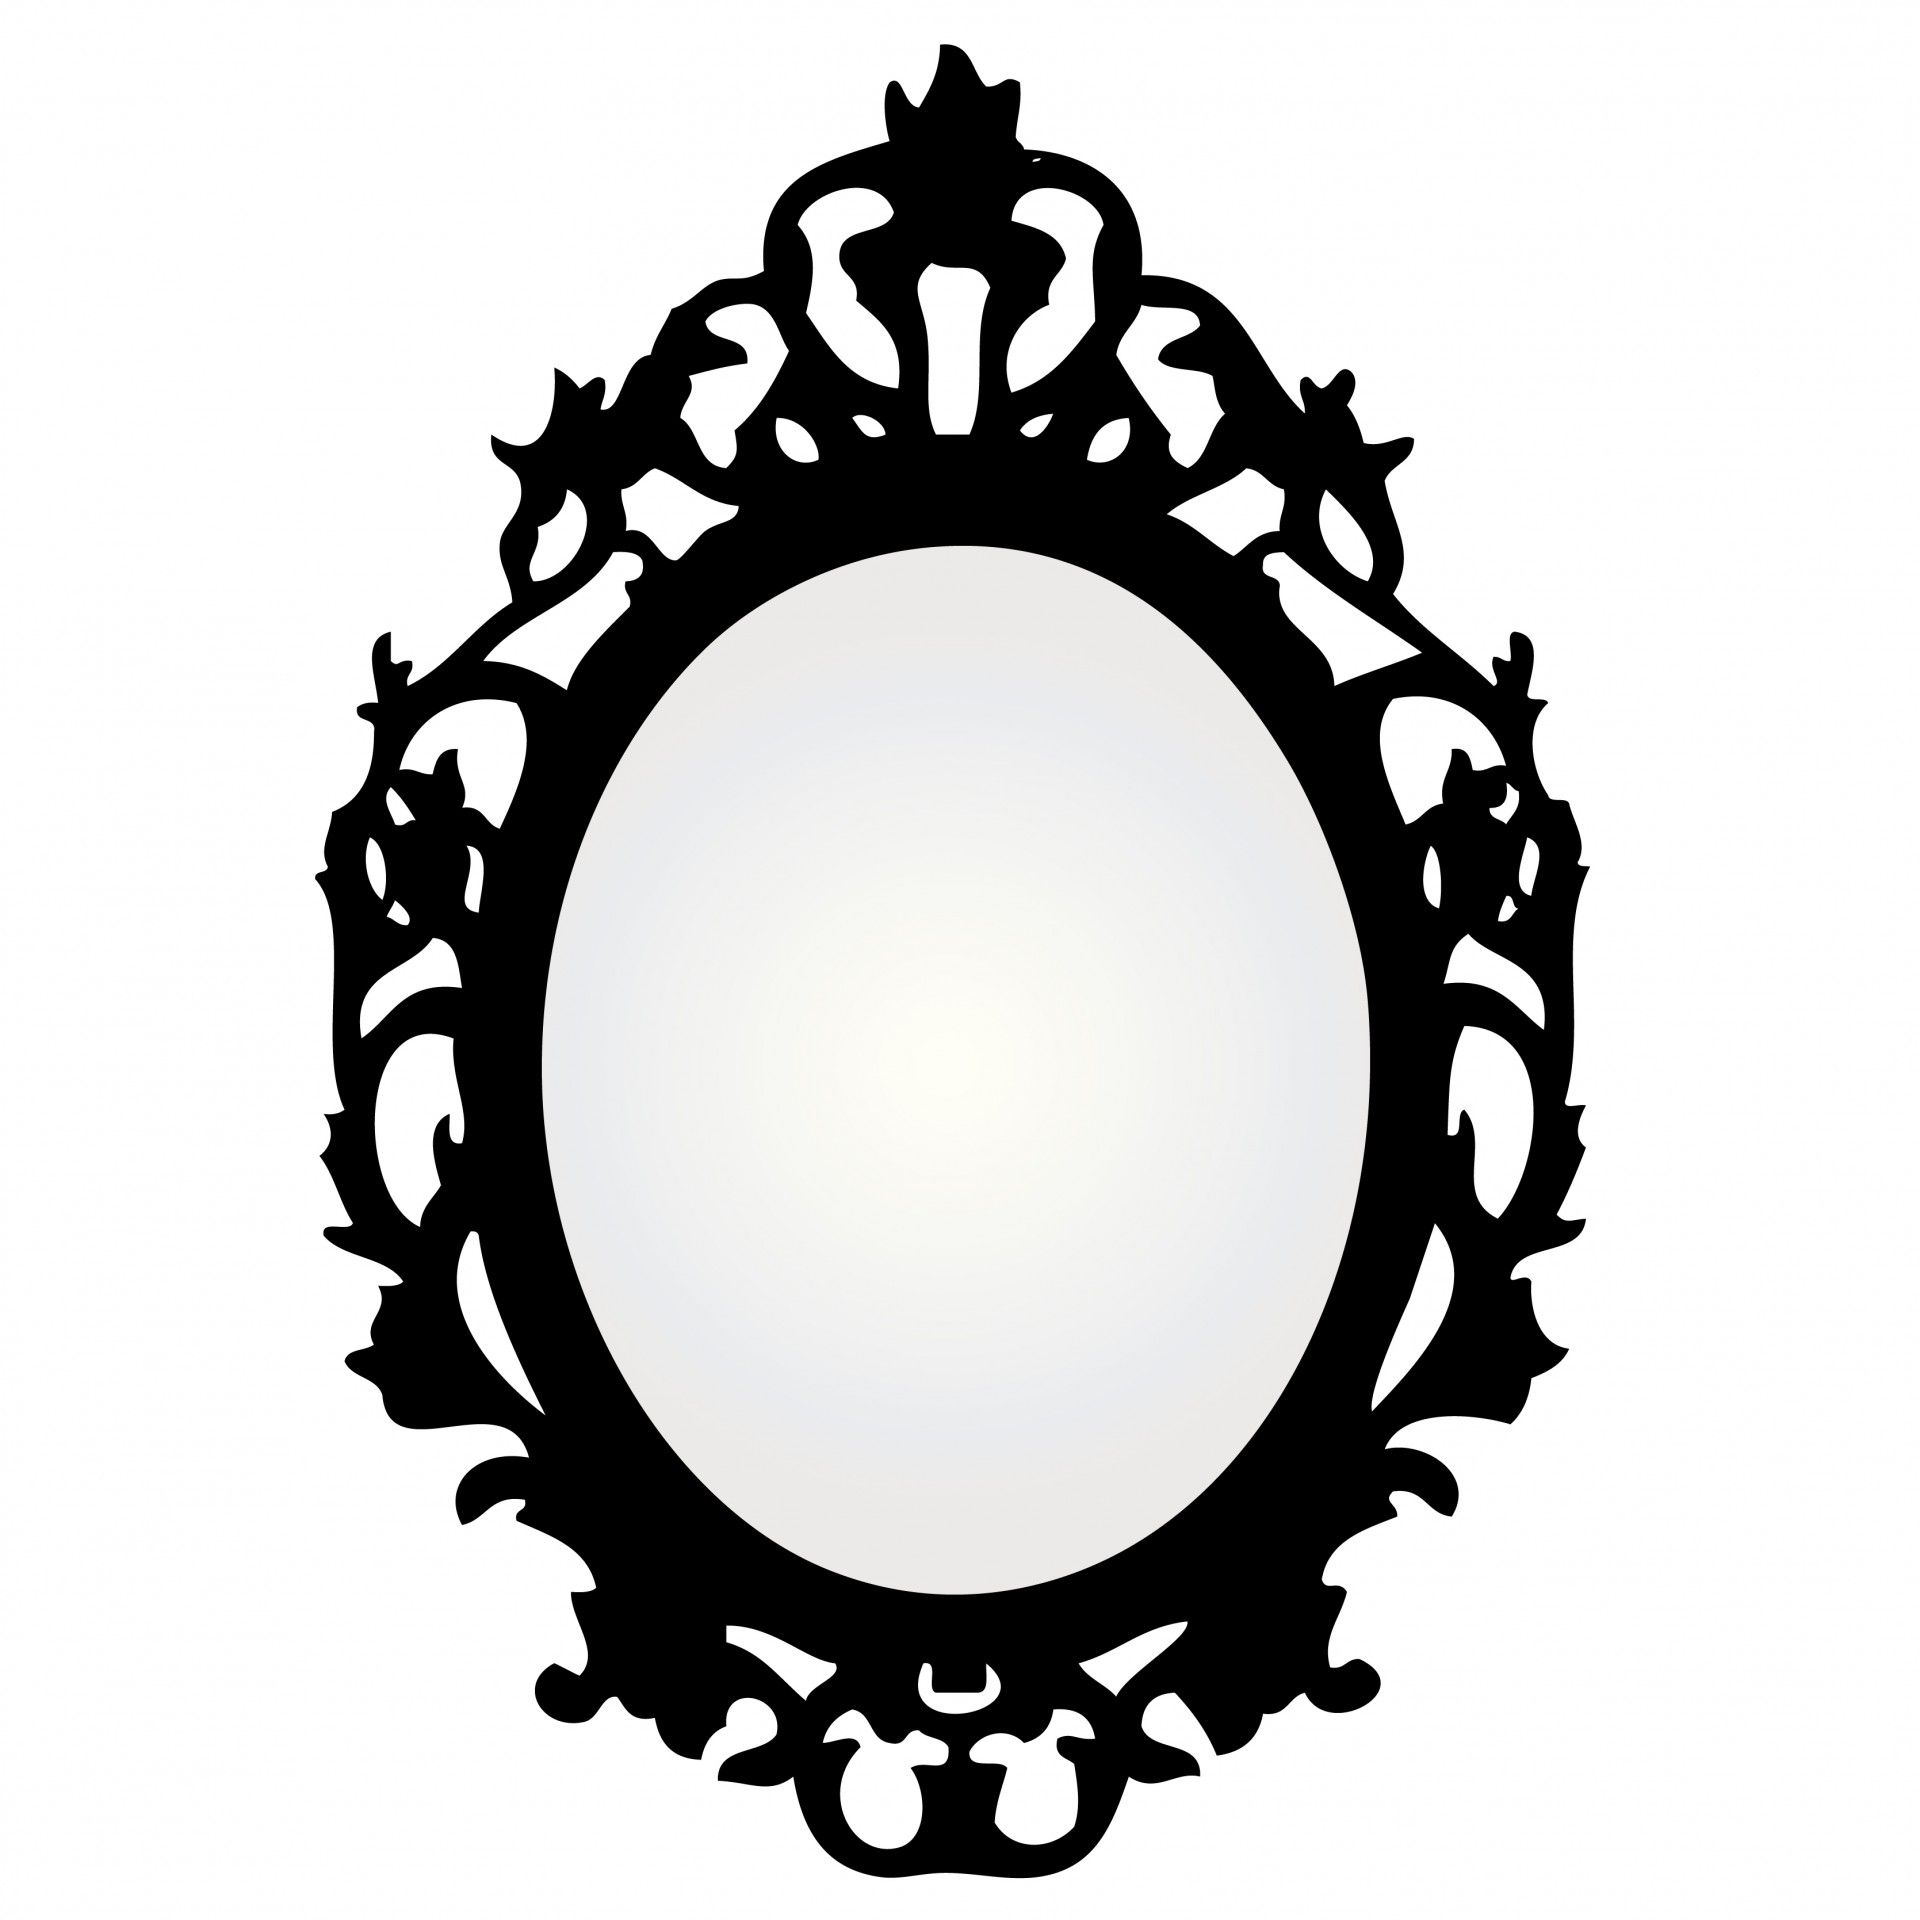 Mirror clipart ornate. With frame on the